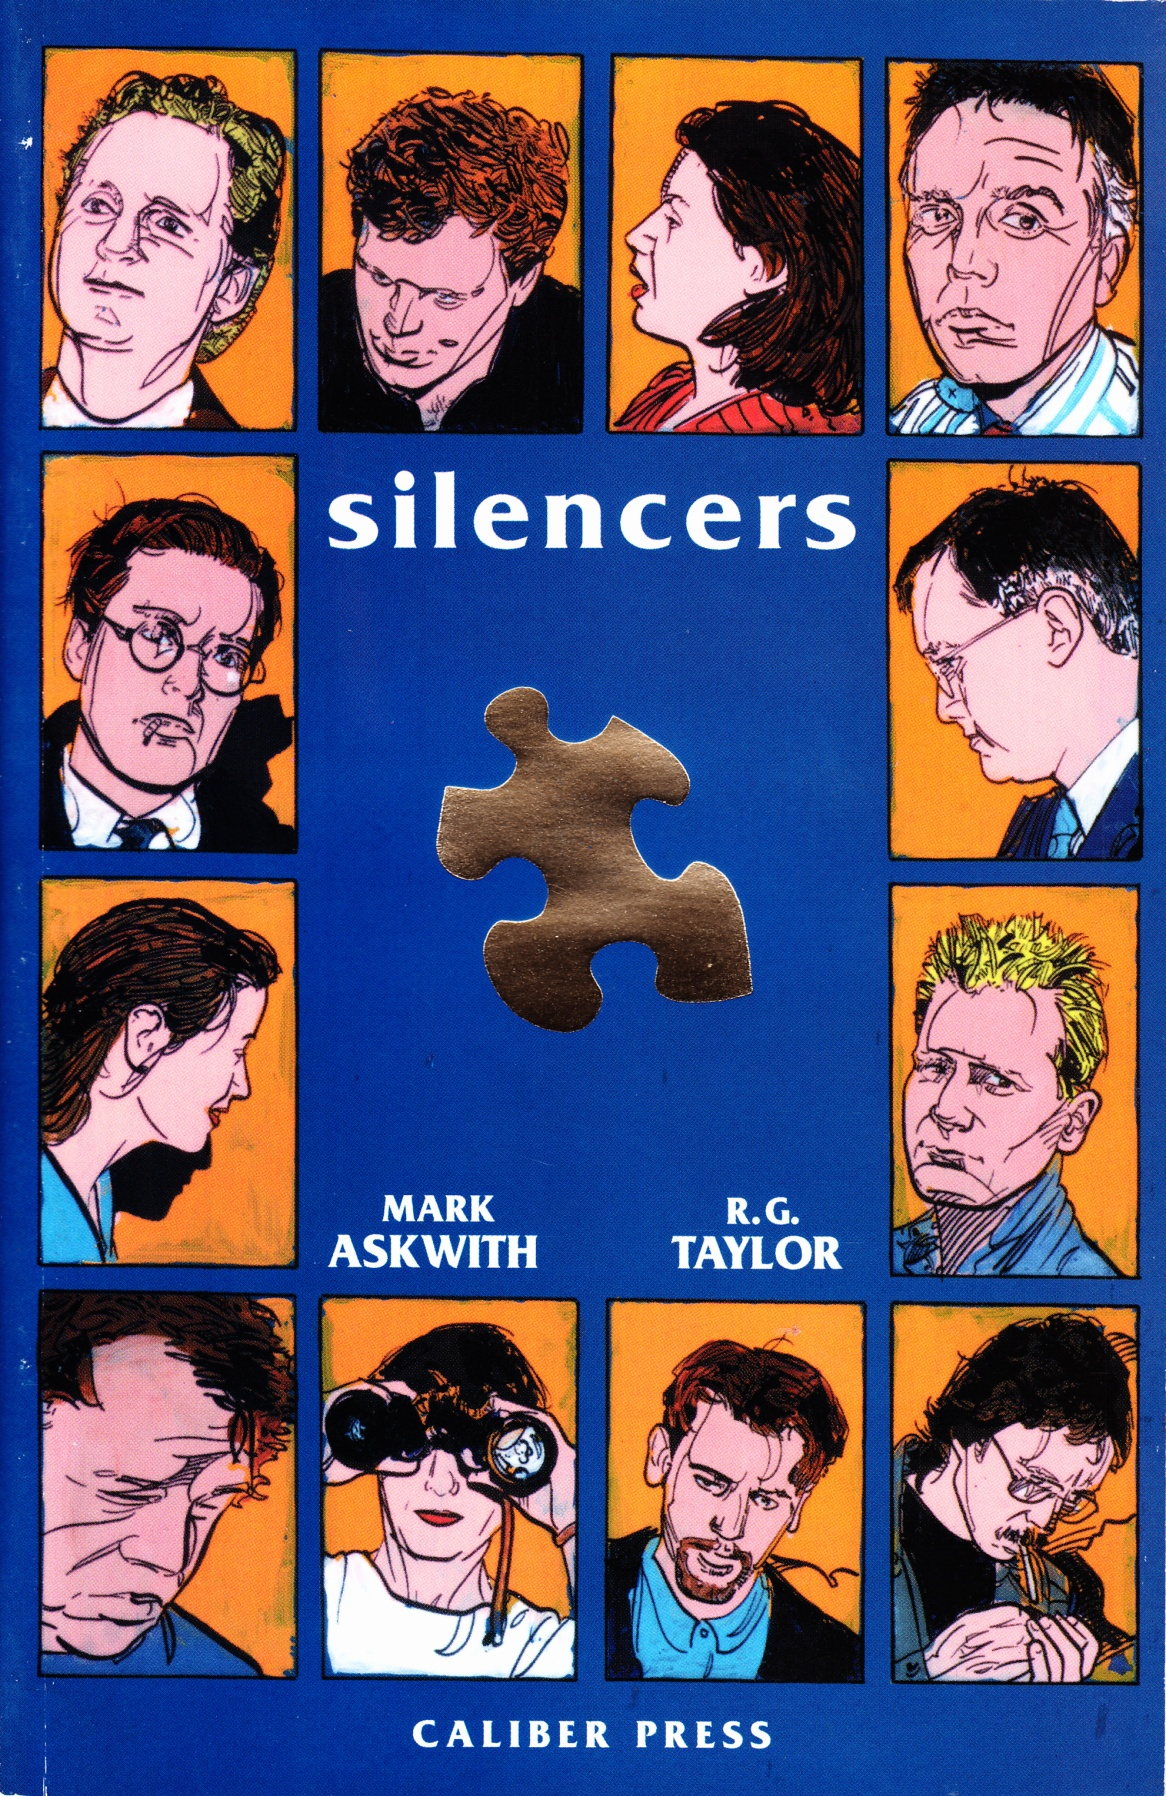 C:\Users\Robert\Documents\CARTOONING ILLUSTRATION ANIMATION\IMAGE CARTOON\IMAGE CARTOON S\TAYLOR R.G. Silencers, 1994, fc.jpg